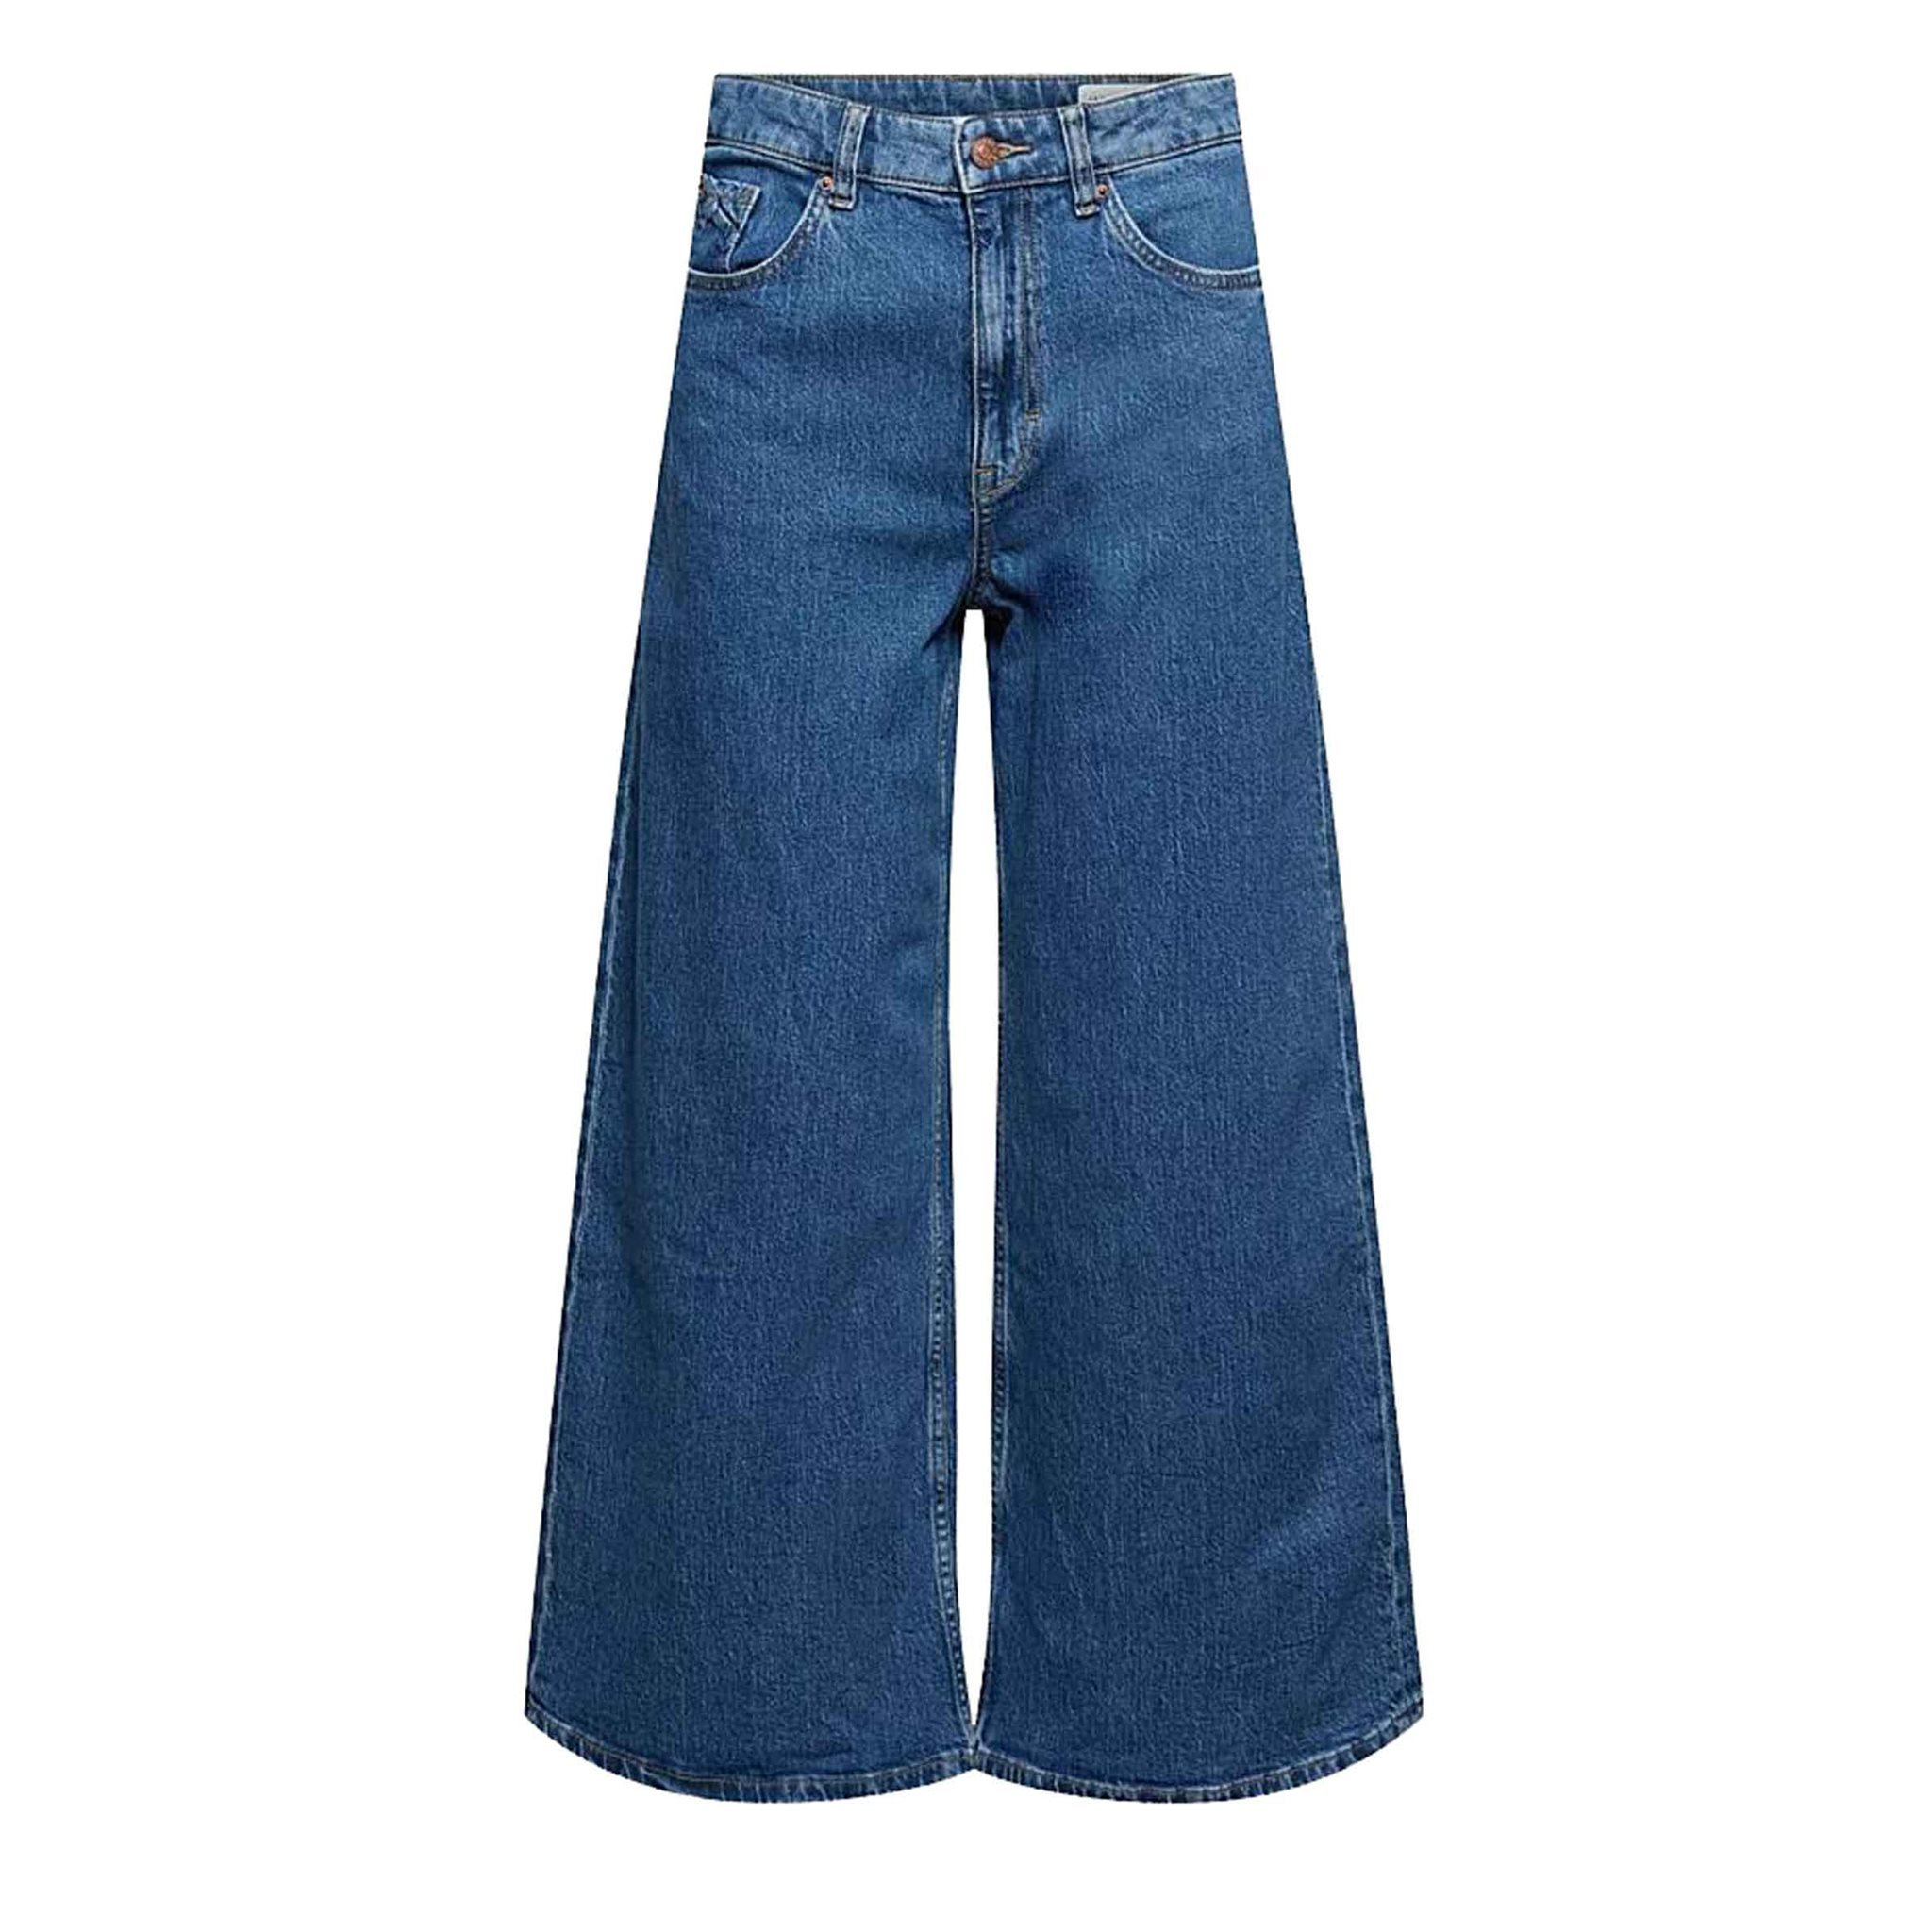 new wide leg Pants denim 28″ ESPRIT